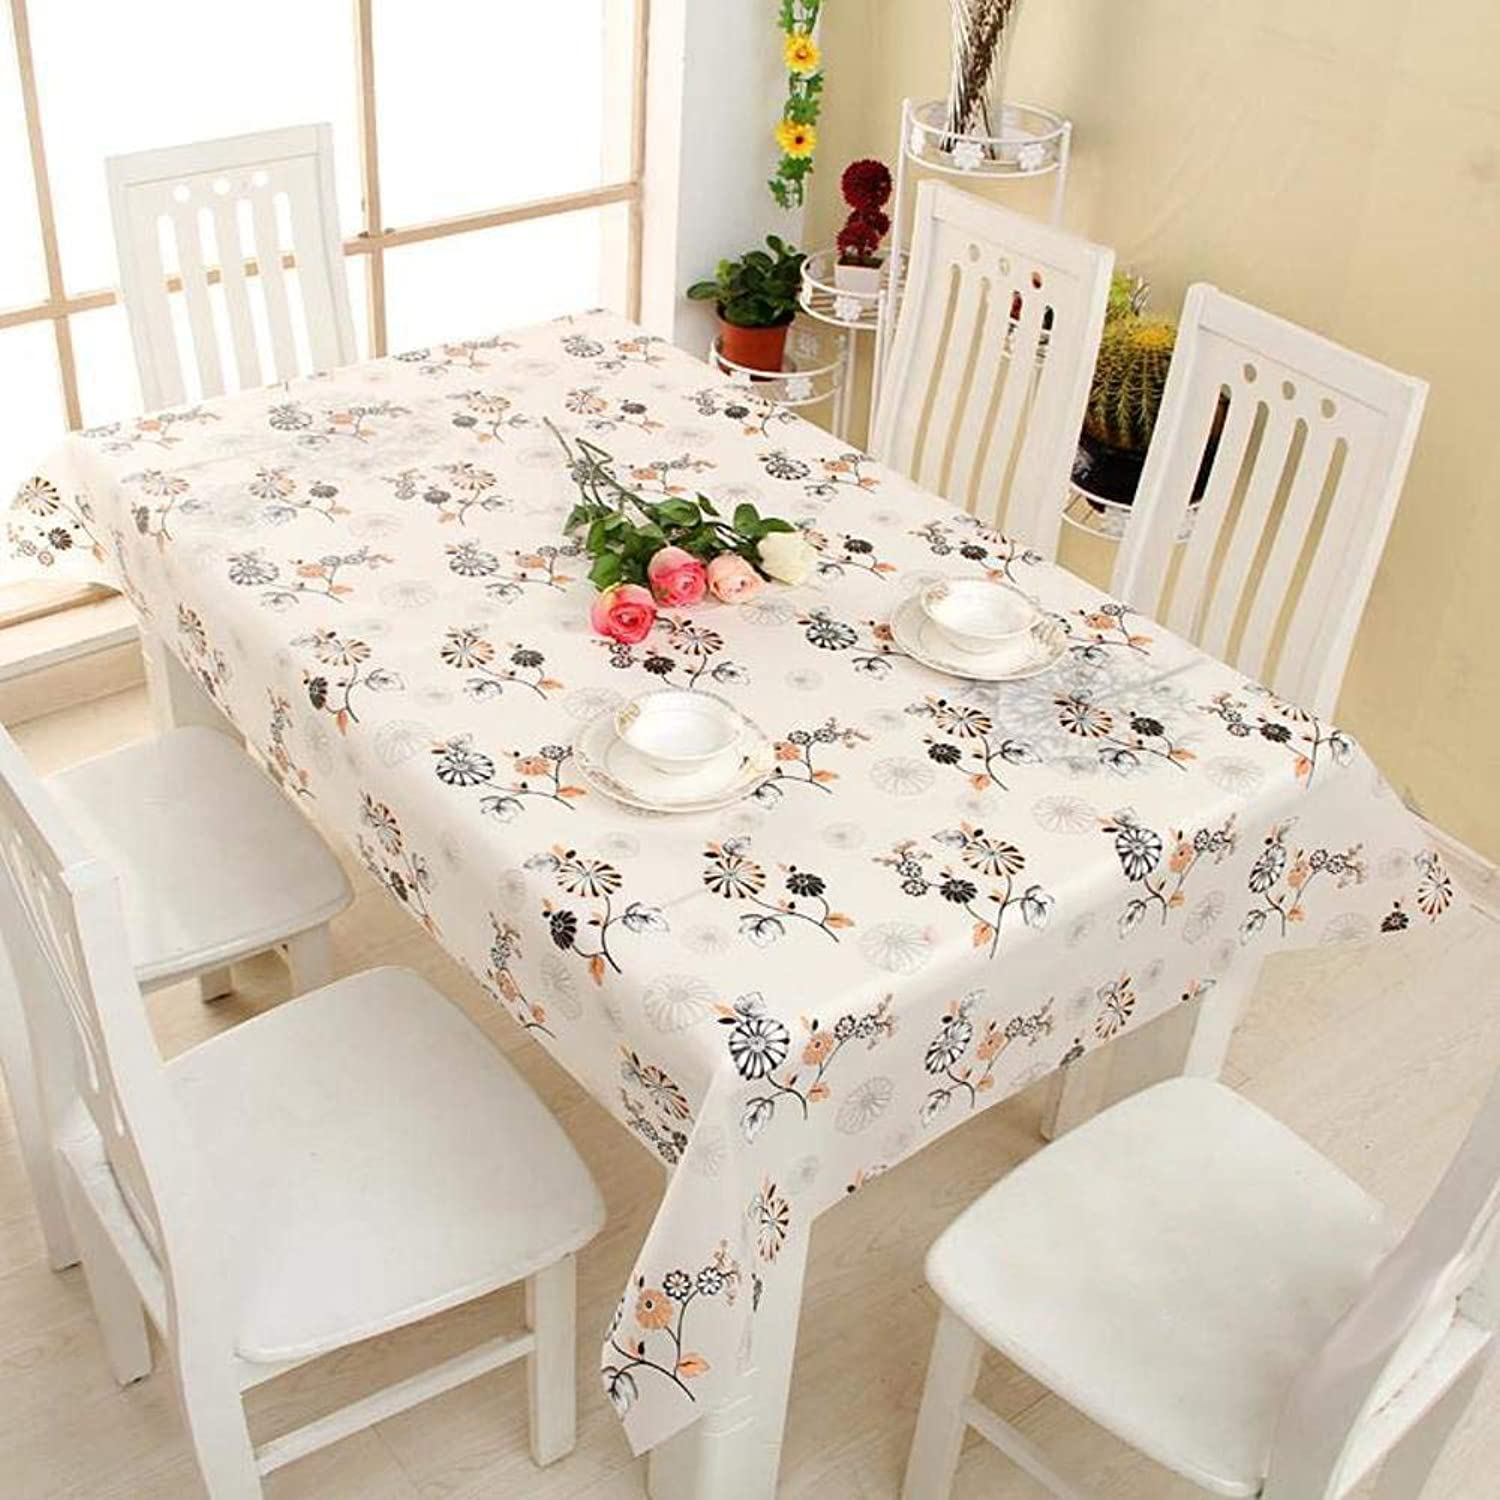 envío rápido en todo el mundo WENYAO tabcloth Waterproof Oil-Proof Anti-Hot Plastic Tablecloth Tablecloth Tablecloth Restaurant Rectangular Coffee tabtabmat tabcover Projoector Desk Covering,B_Diameter 140cm  forma única